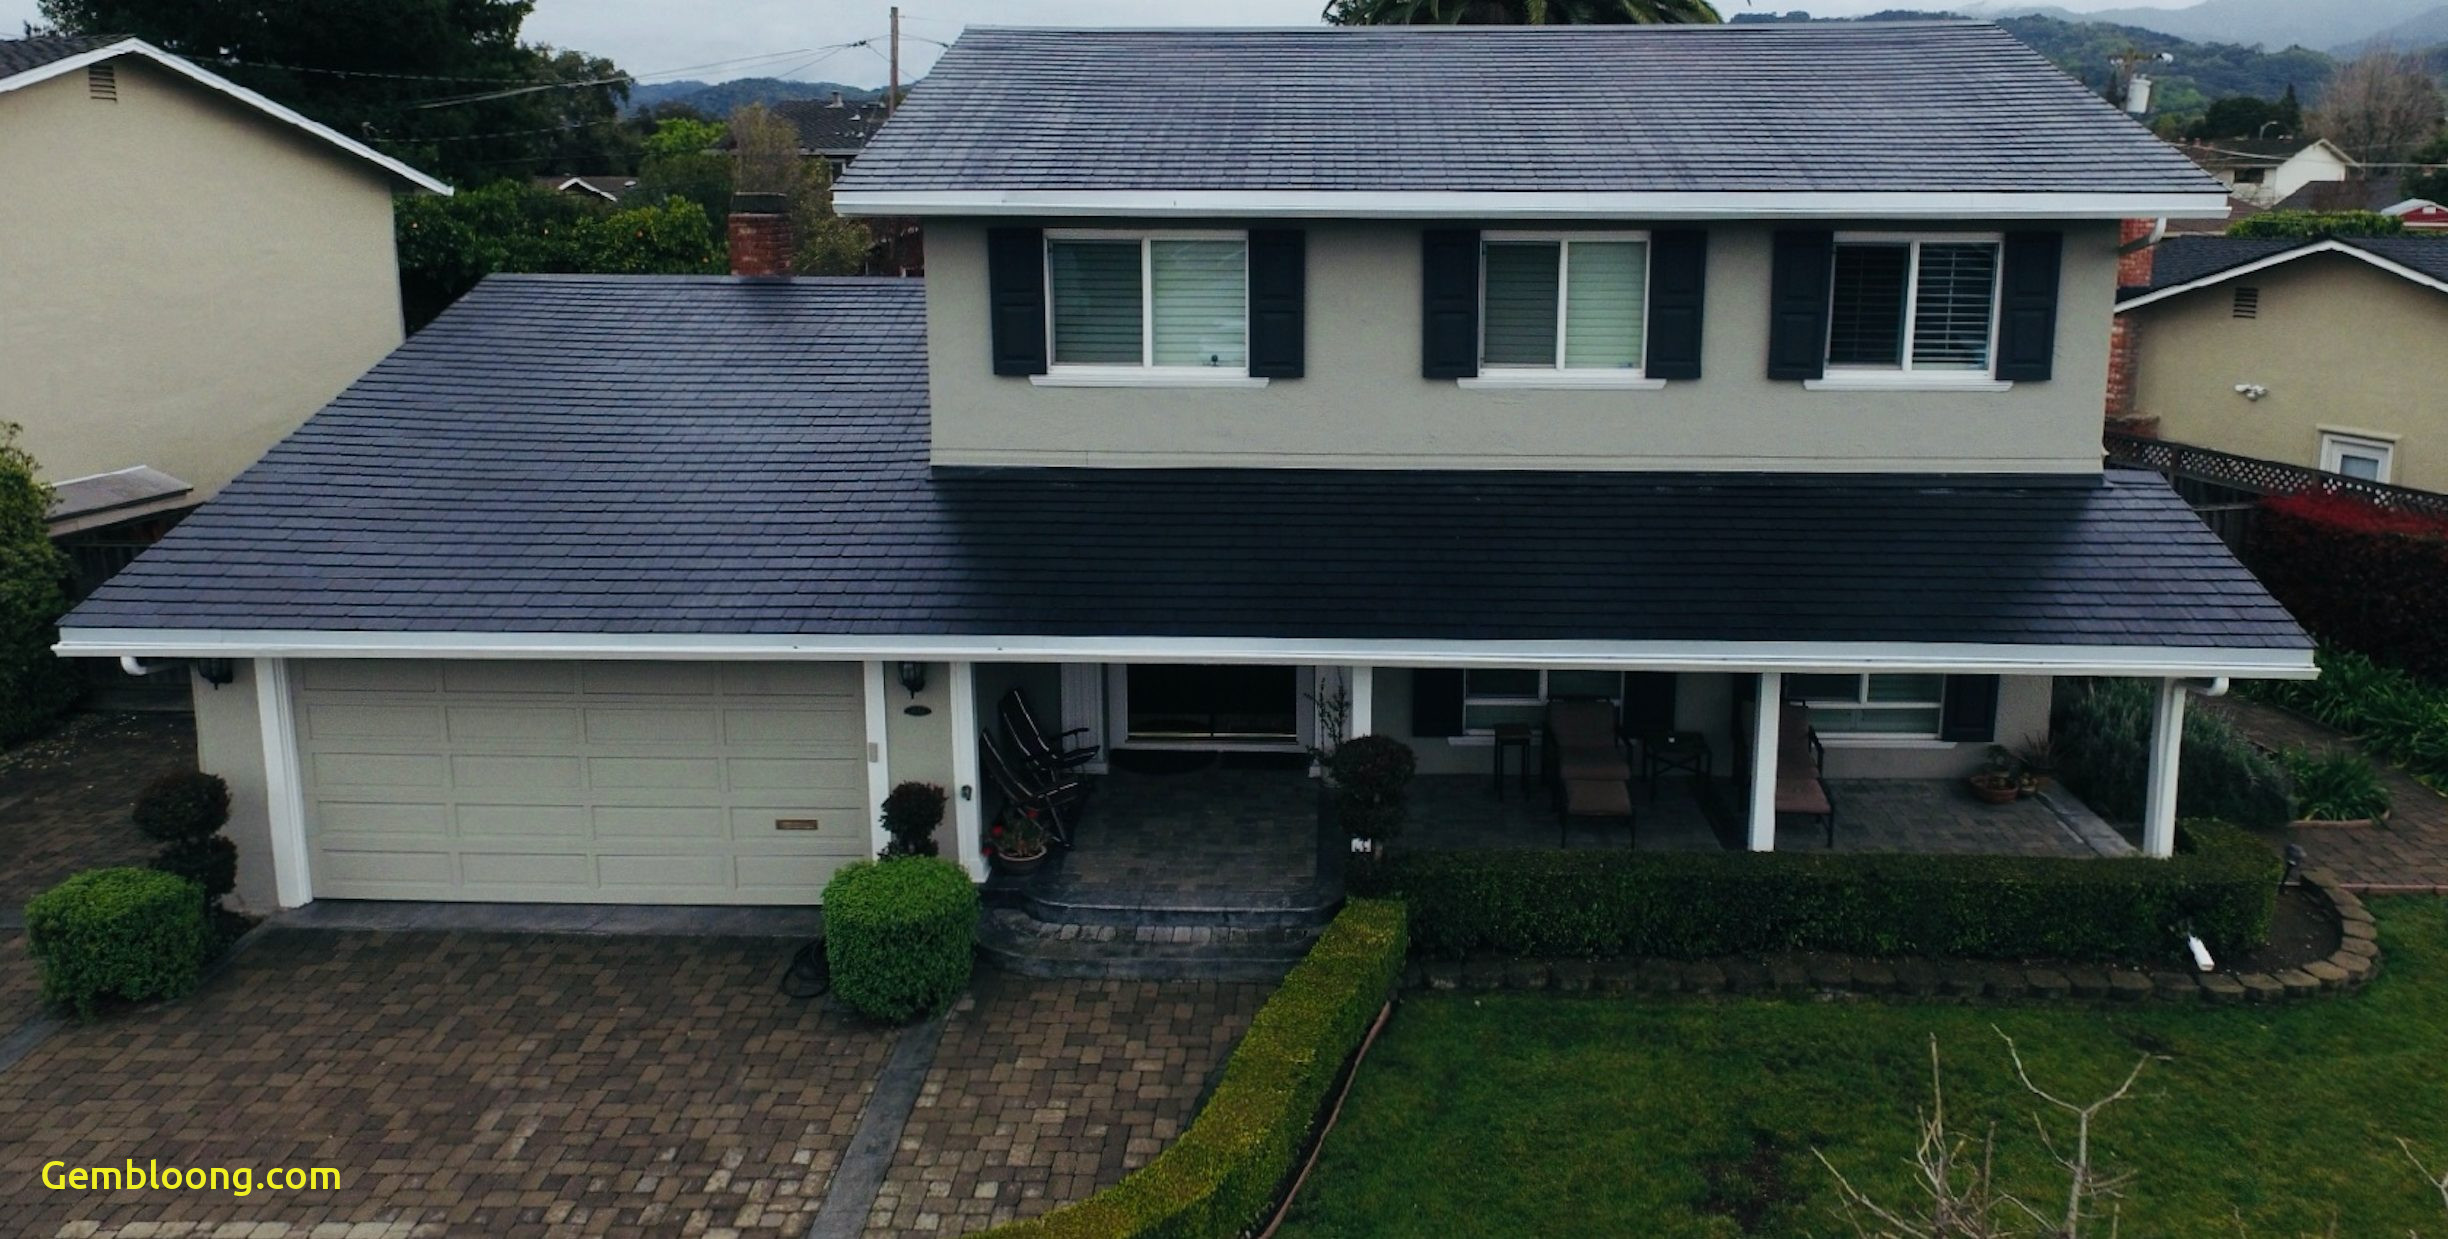 Tesla Roof Luxury Tesla solar Roof Long Term Review Insights From A